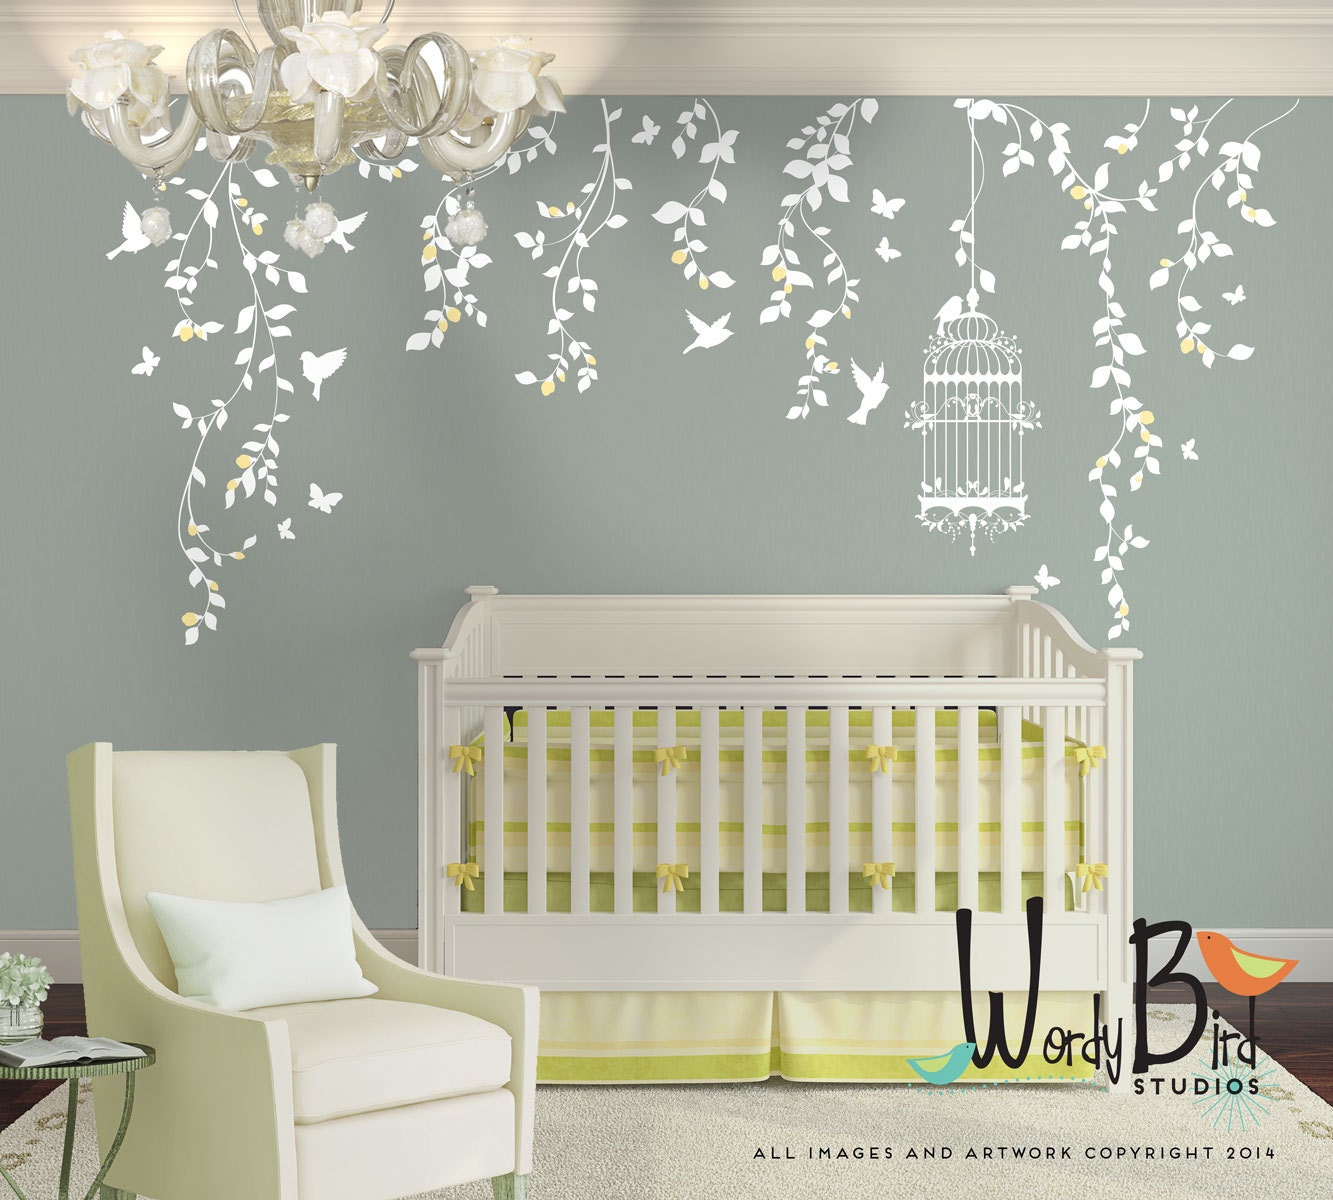 Description. Beautiful and intricate nursery wall decal ...